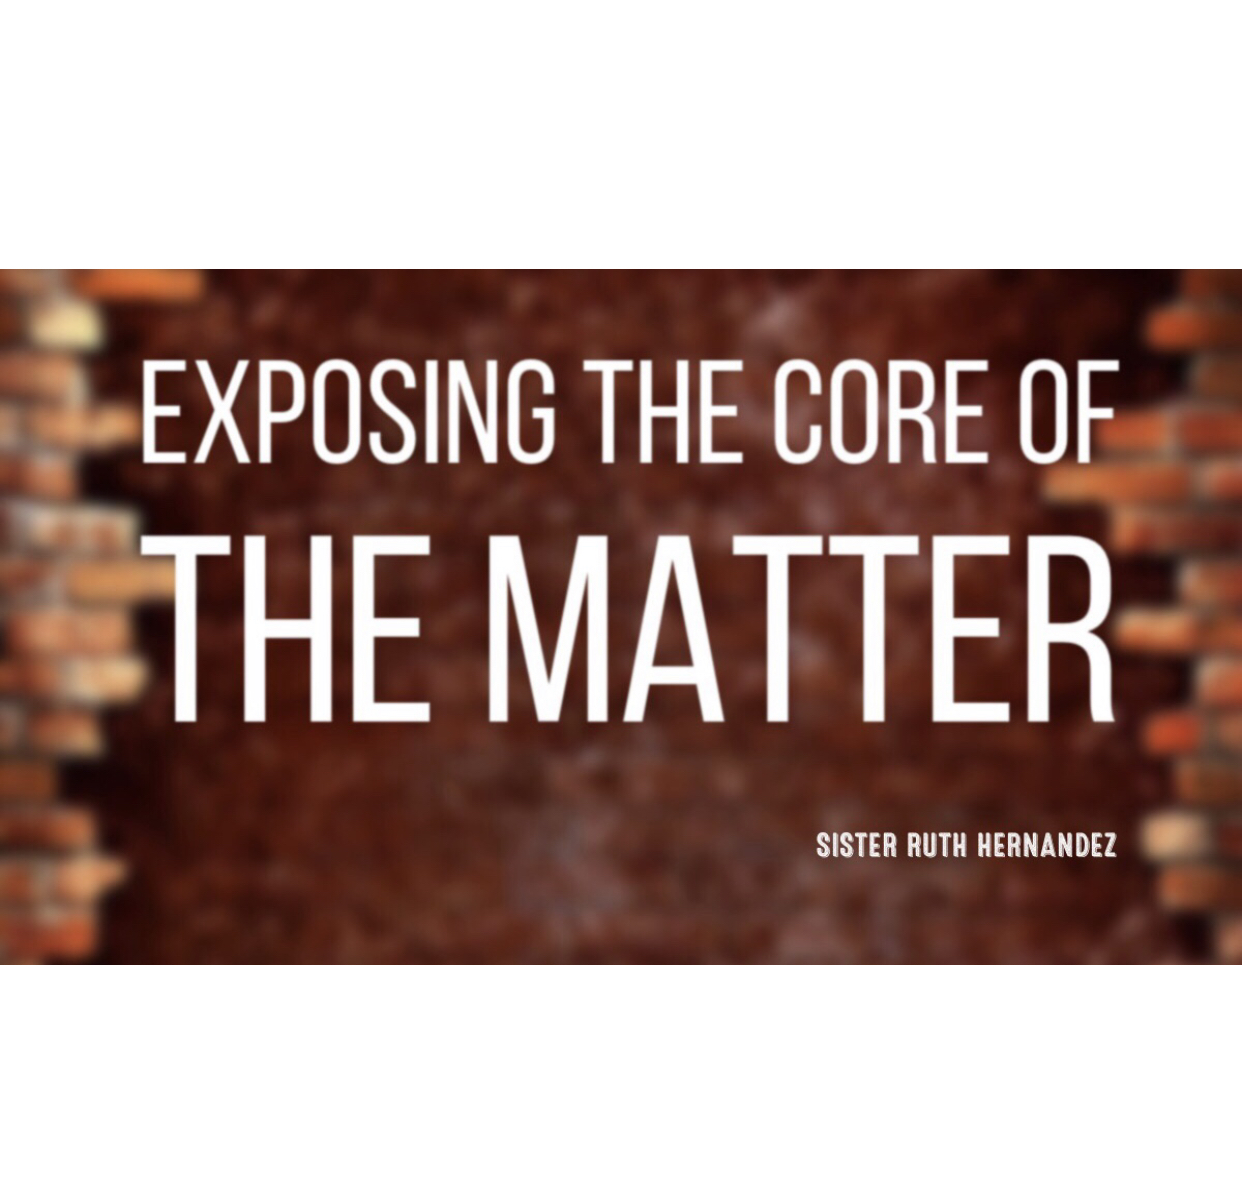 Sister Ruth Hernandez - Exposing The Core Of The Matter